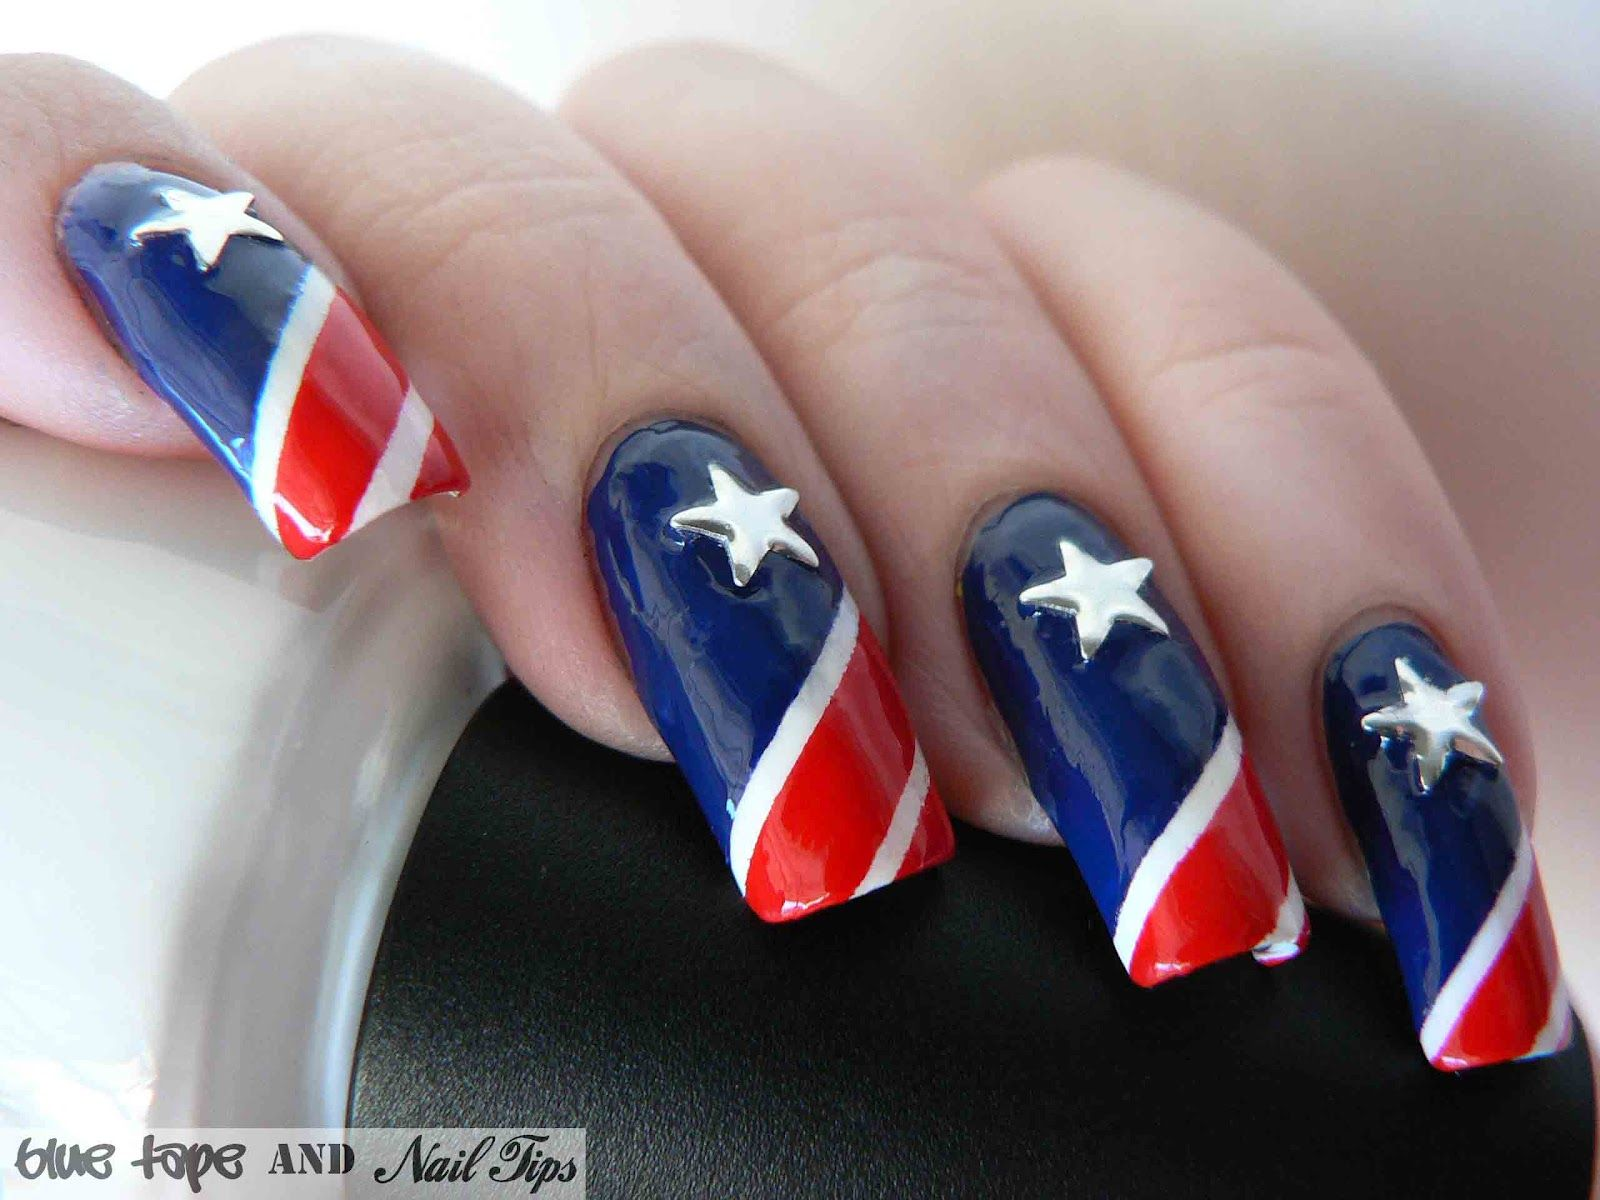 July 4 nail design 4th of july is here again so its time for a july 4 nail design 4th of july is here again so its time for prinsesfo Image collections